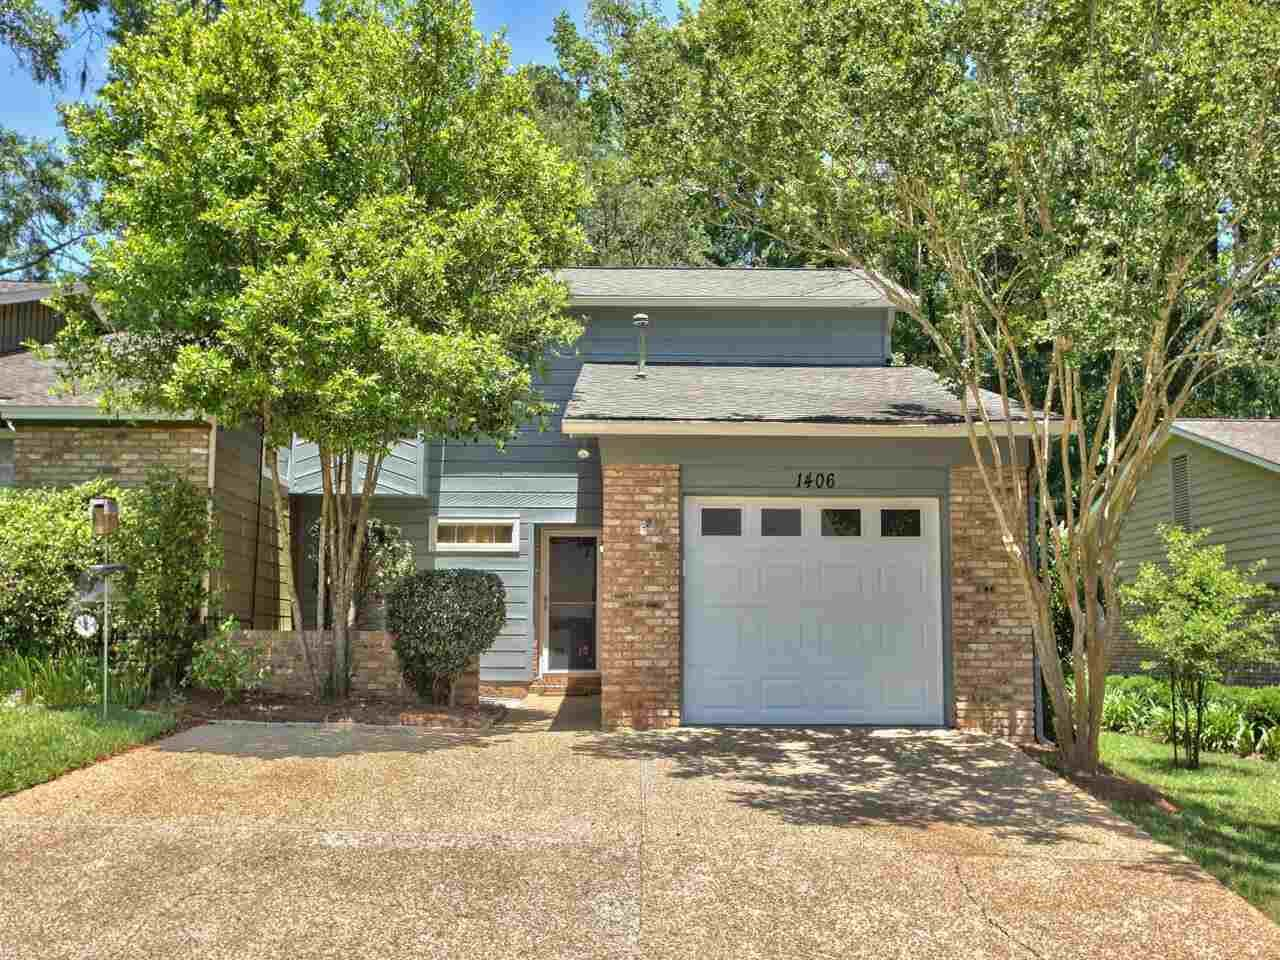 1406 Sturbridge Place #9, Tallahassee, FL 32308 - MLS#: 332303